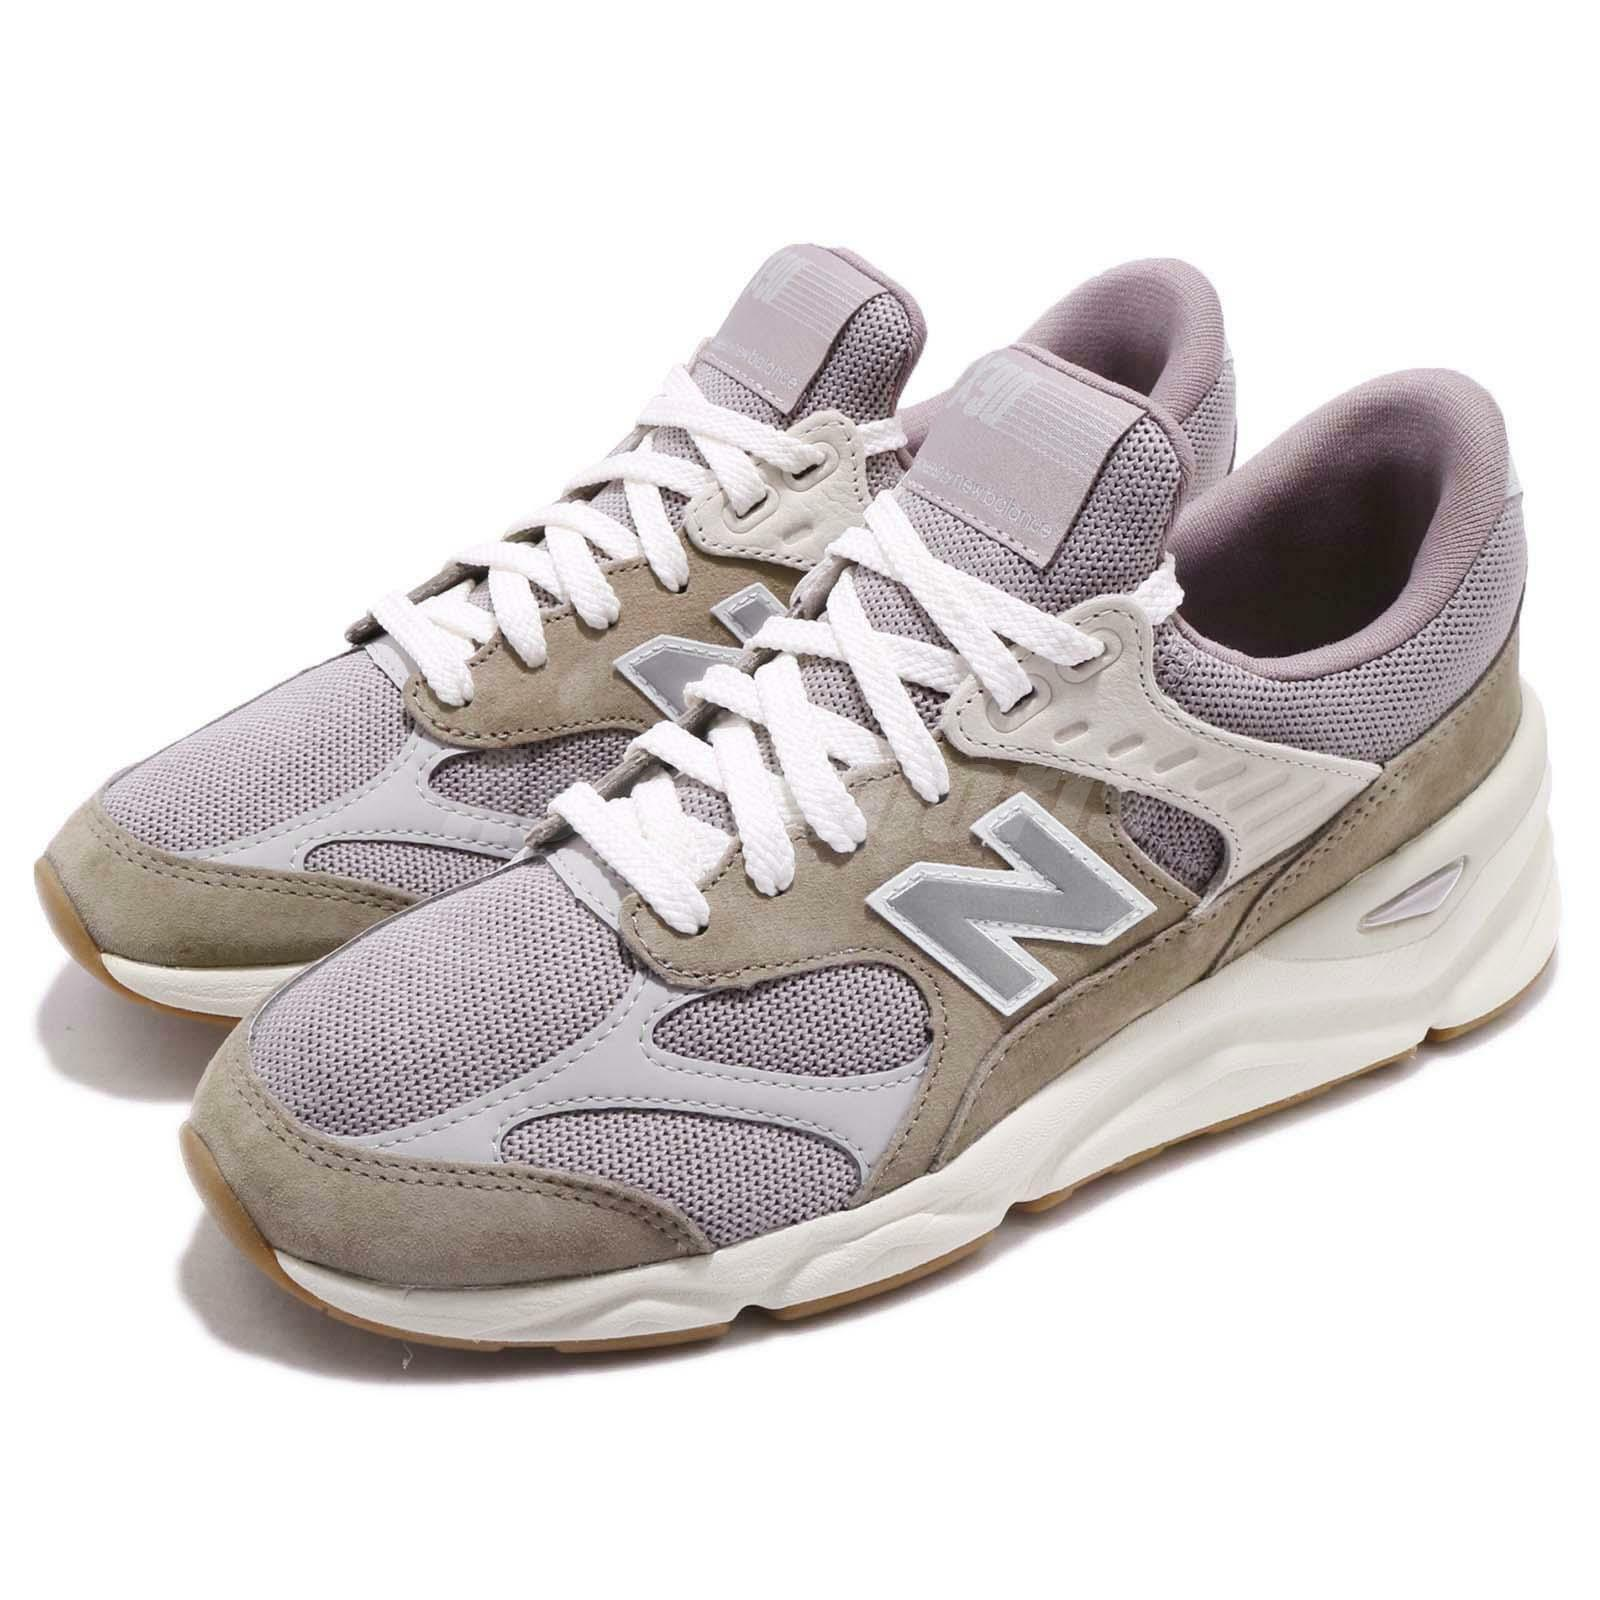 New Balance MSX90RCA D Brown Ivory Gum Men Running shoes Sneakers MSX90RCAD